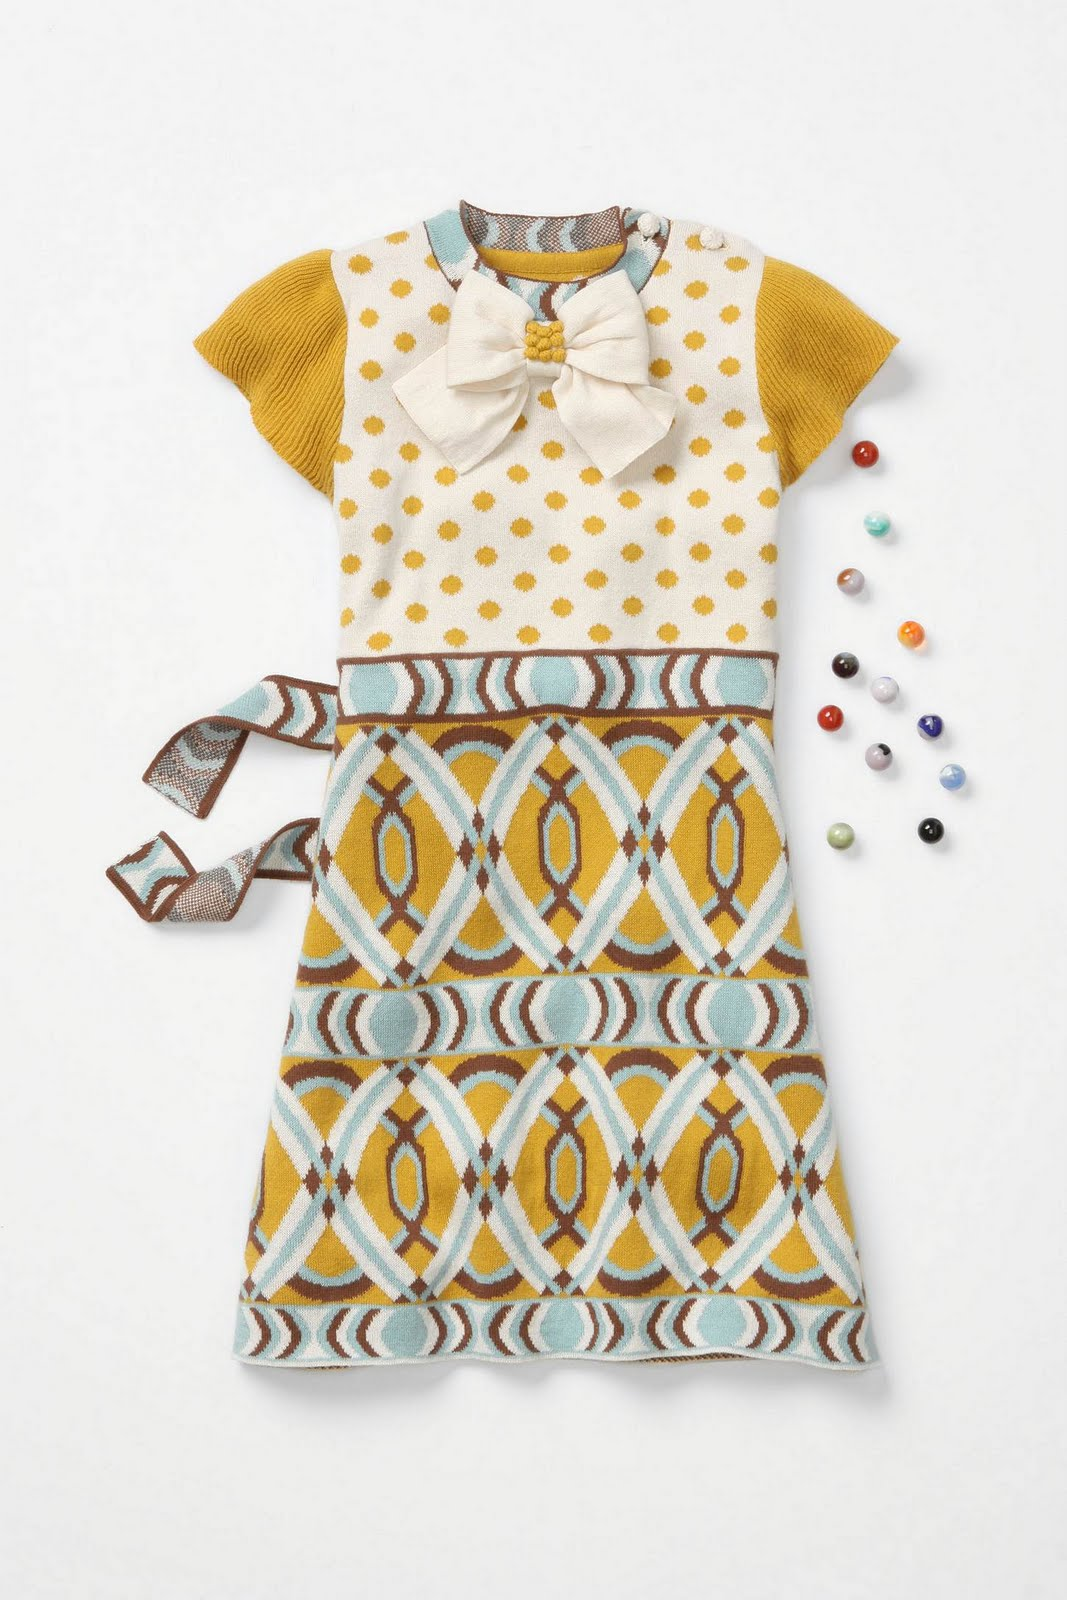 f5784d601cb8 Breakfast at Anthropologie: Anthropologie Kids Styles